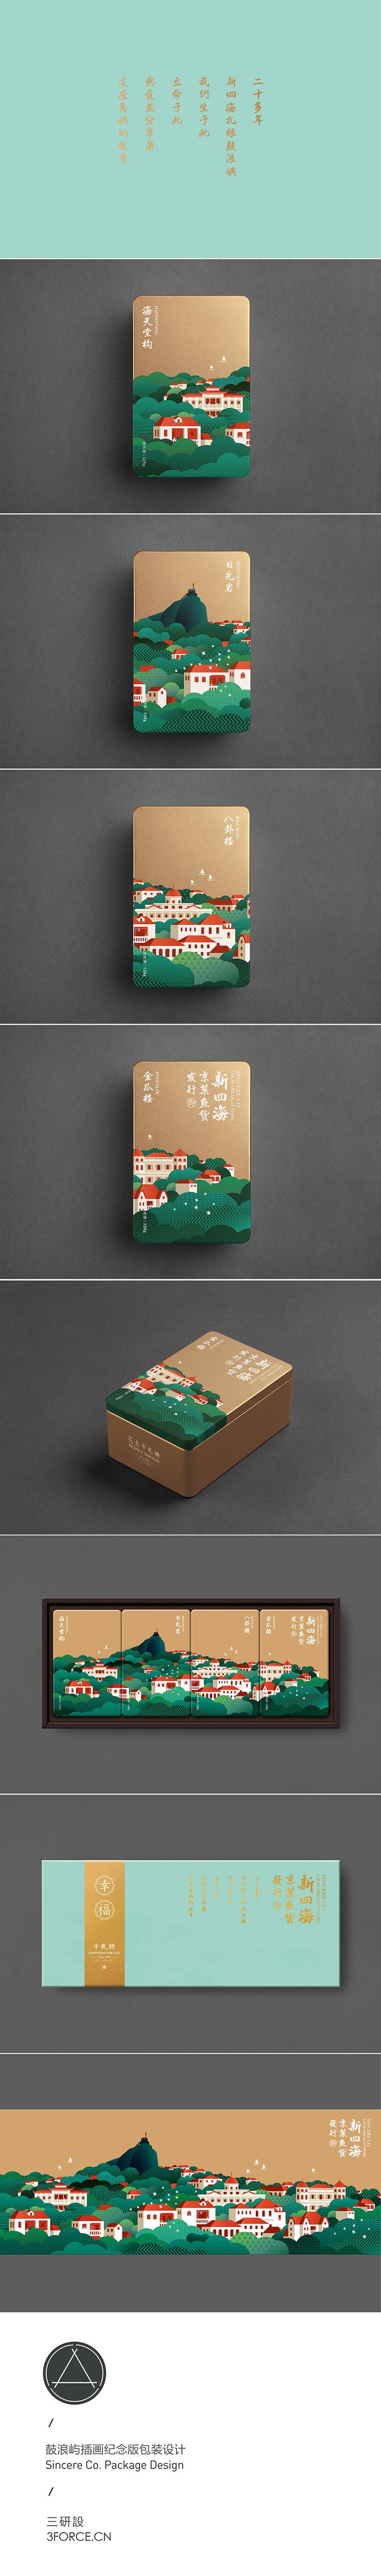 Sincere Co. Nougat Packaging / 新四海牛軋糖包裝設計on Behance